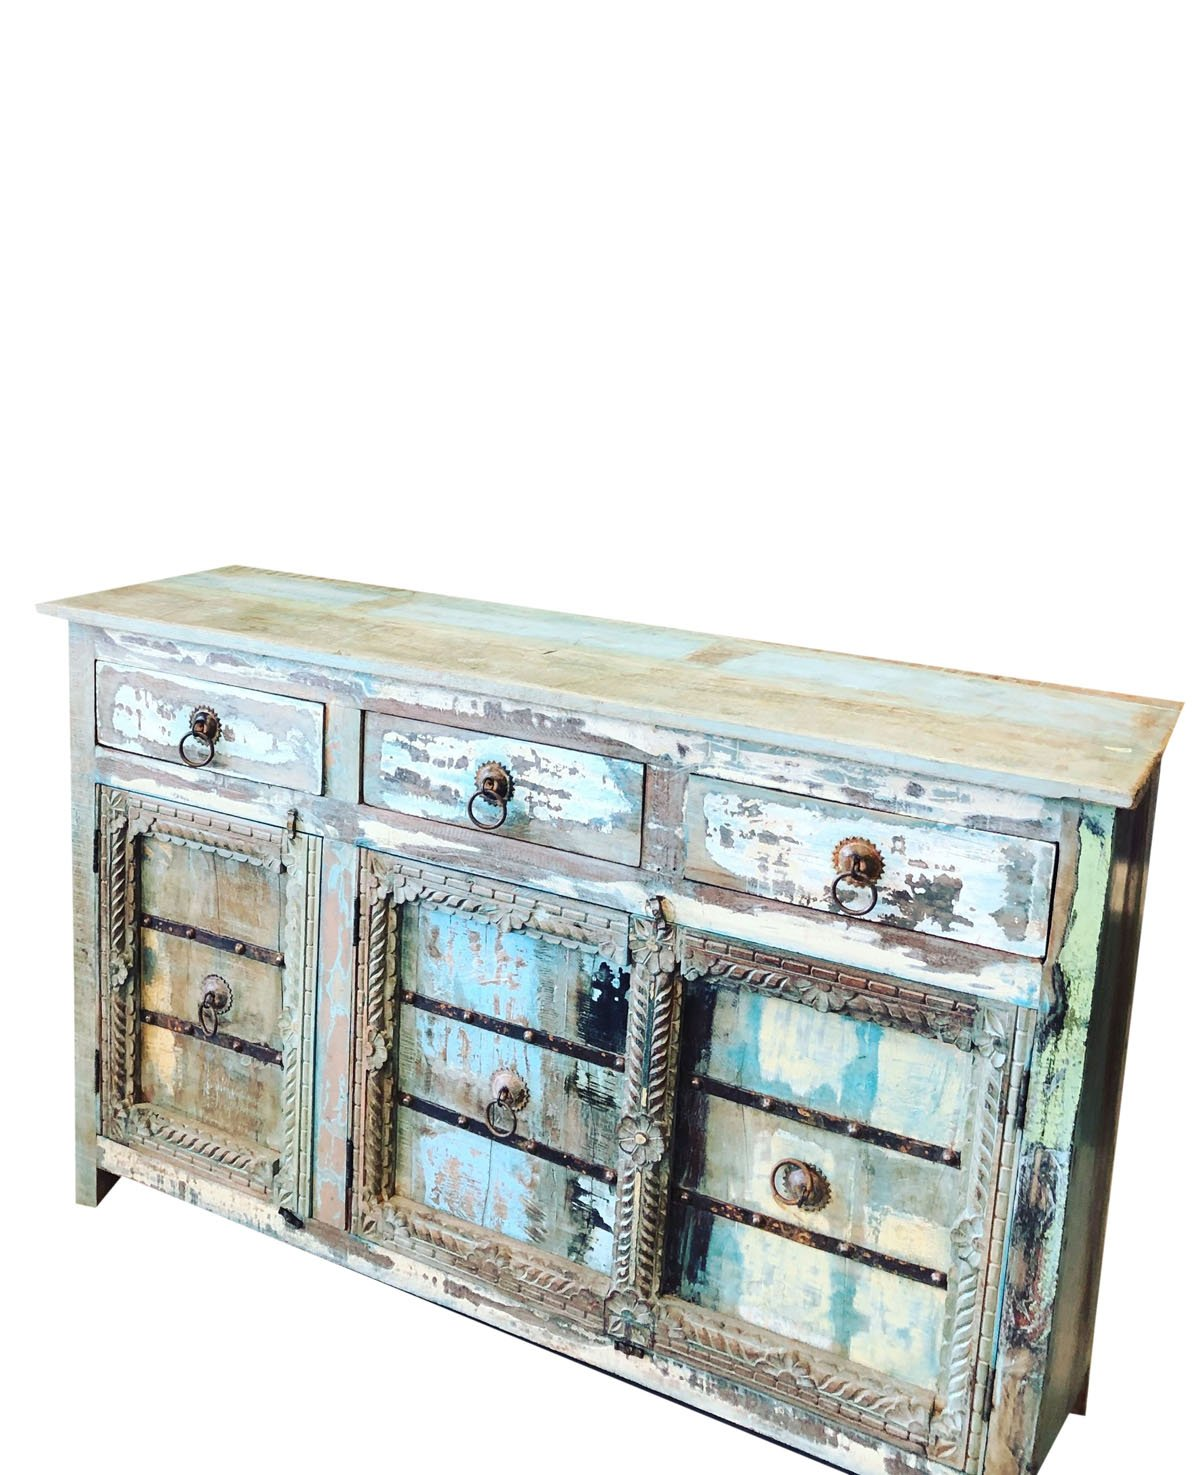 Mogul Interior Antique Sideboard Solid Wood Console Rustic Distressed Blue Chest Buffet Cabinet Furniture Farmhouse Chic by Mogul Interior (Image #3)